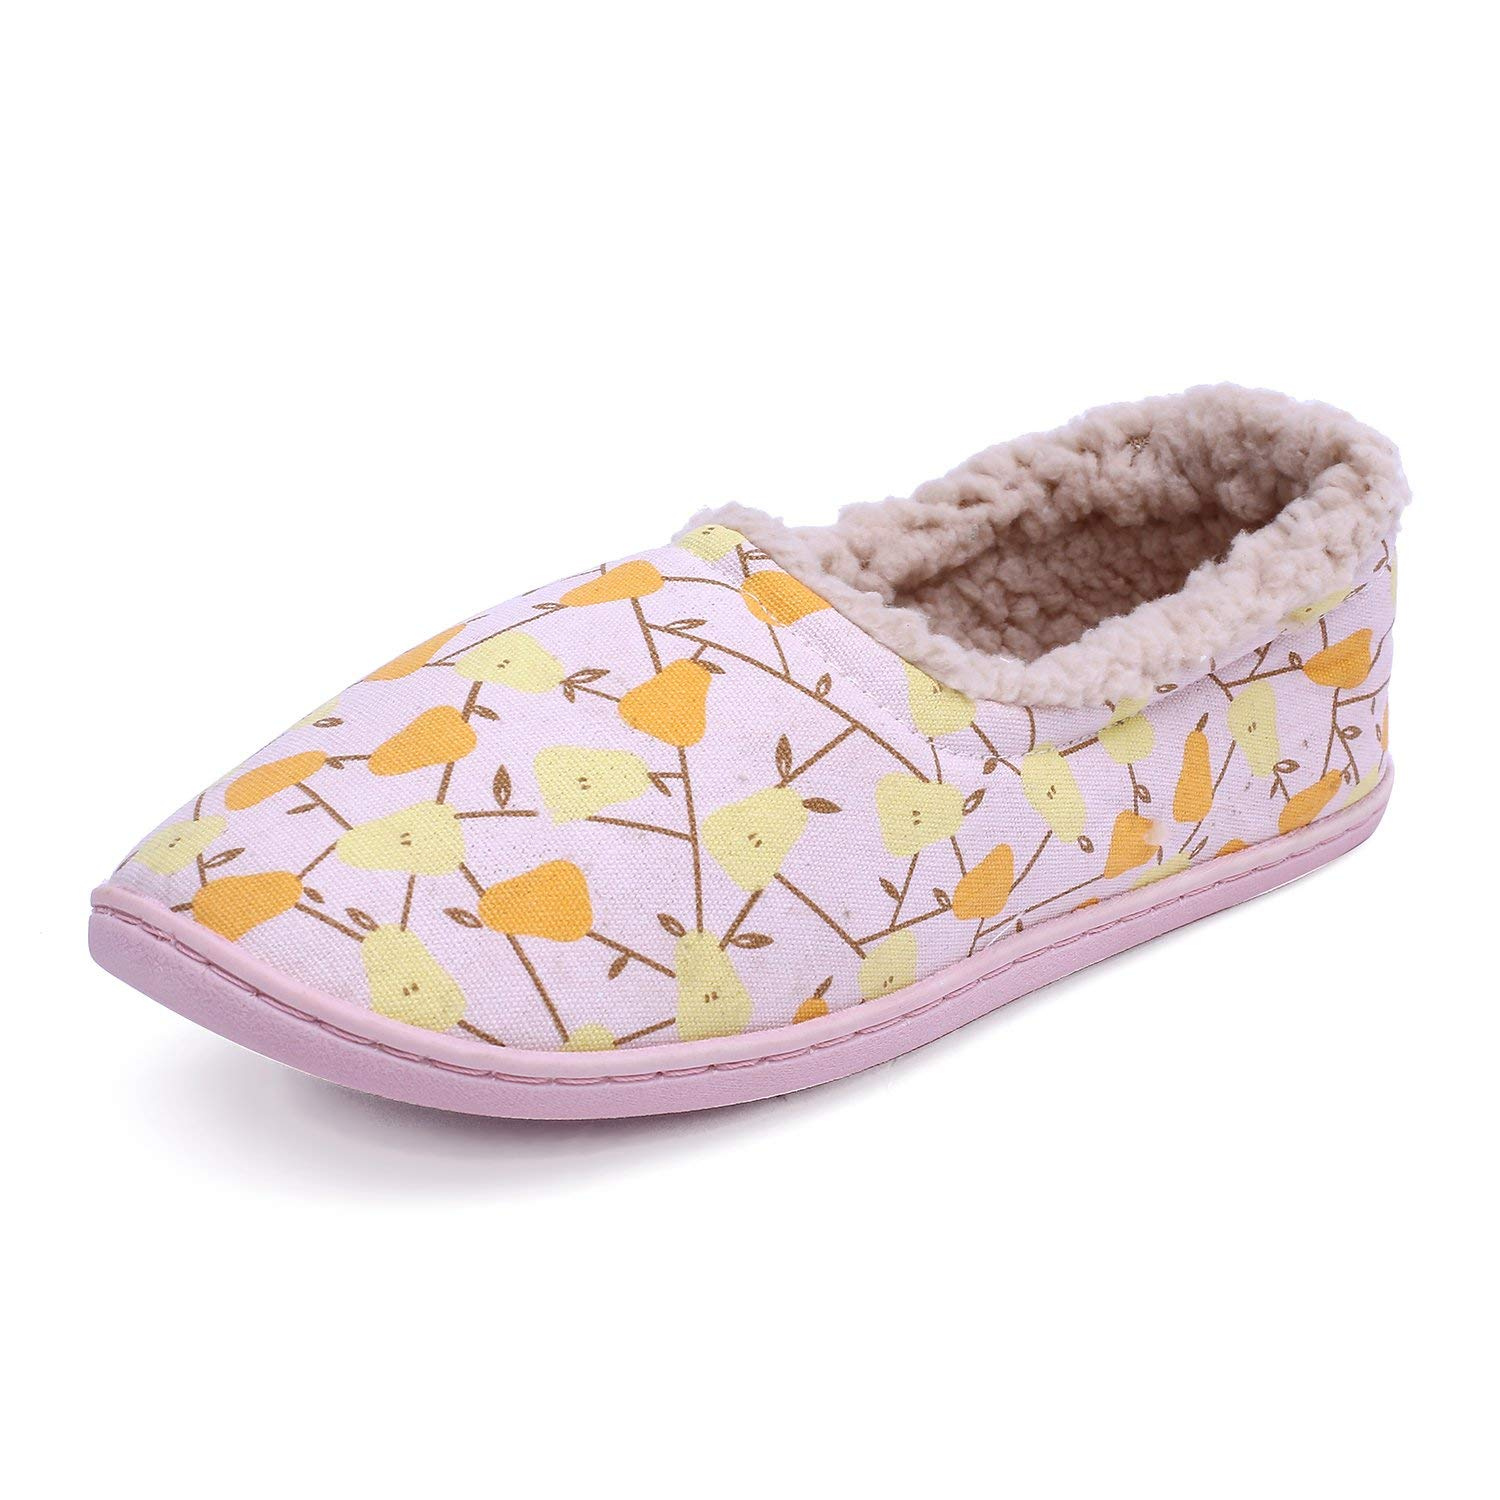 Intinext Women's Cotton Soft Sole Washable Anti-Skid Cozy House Shoes Slippers